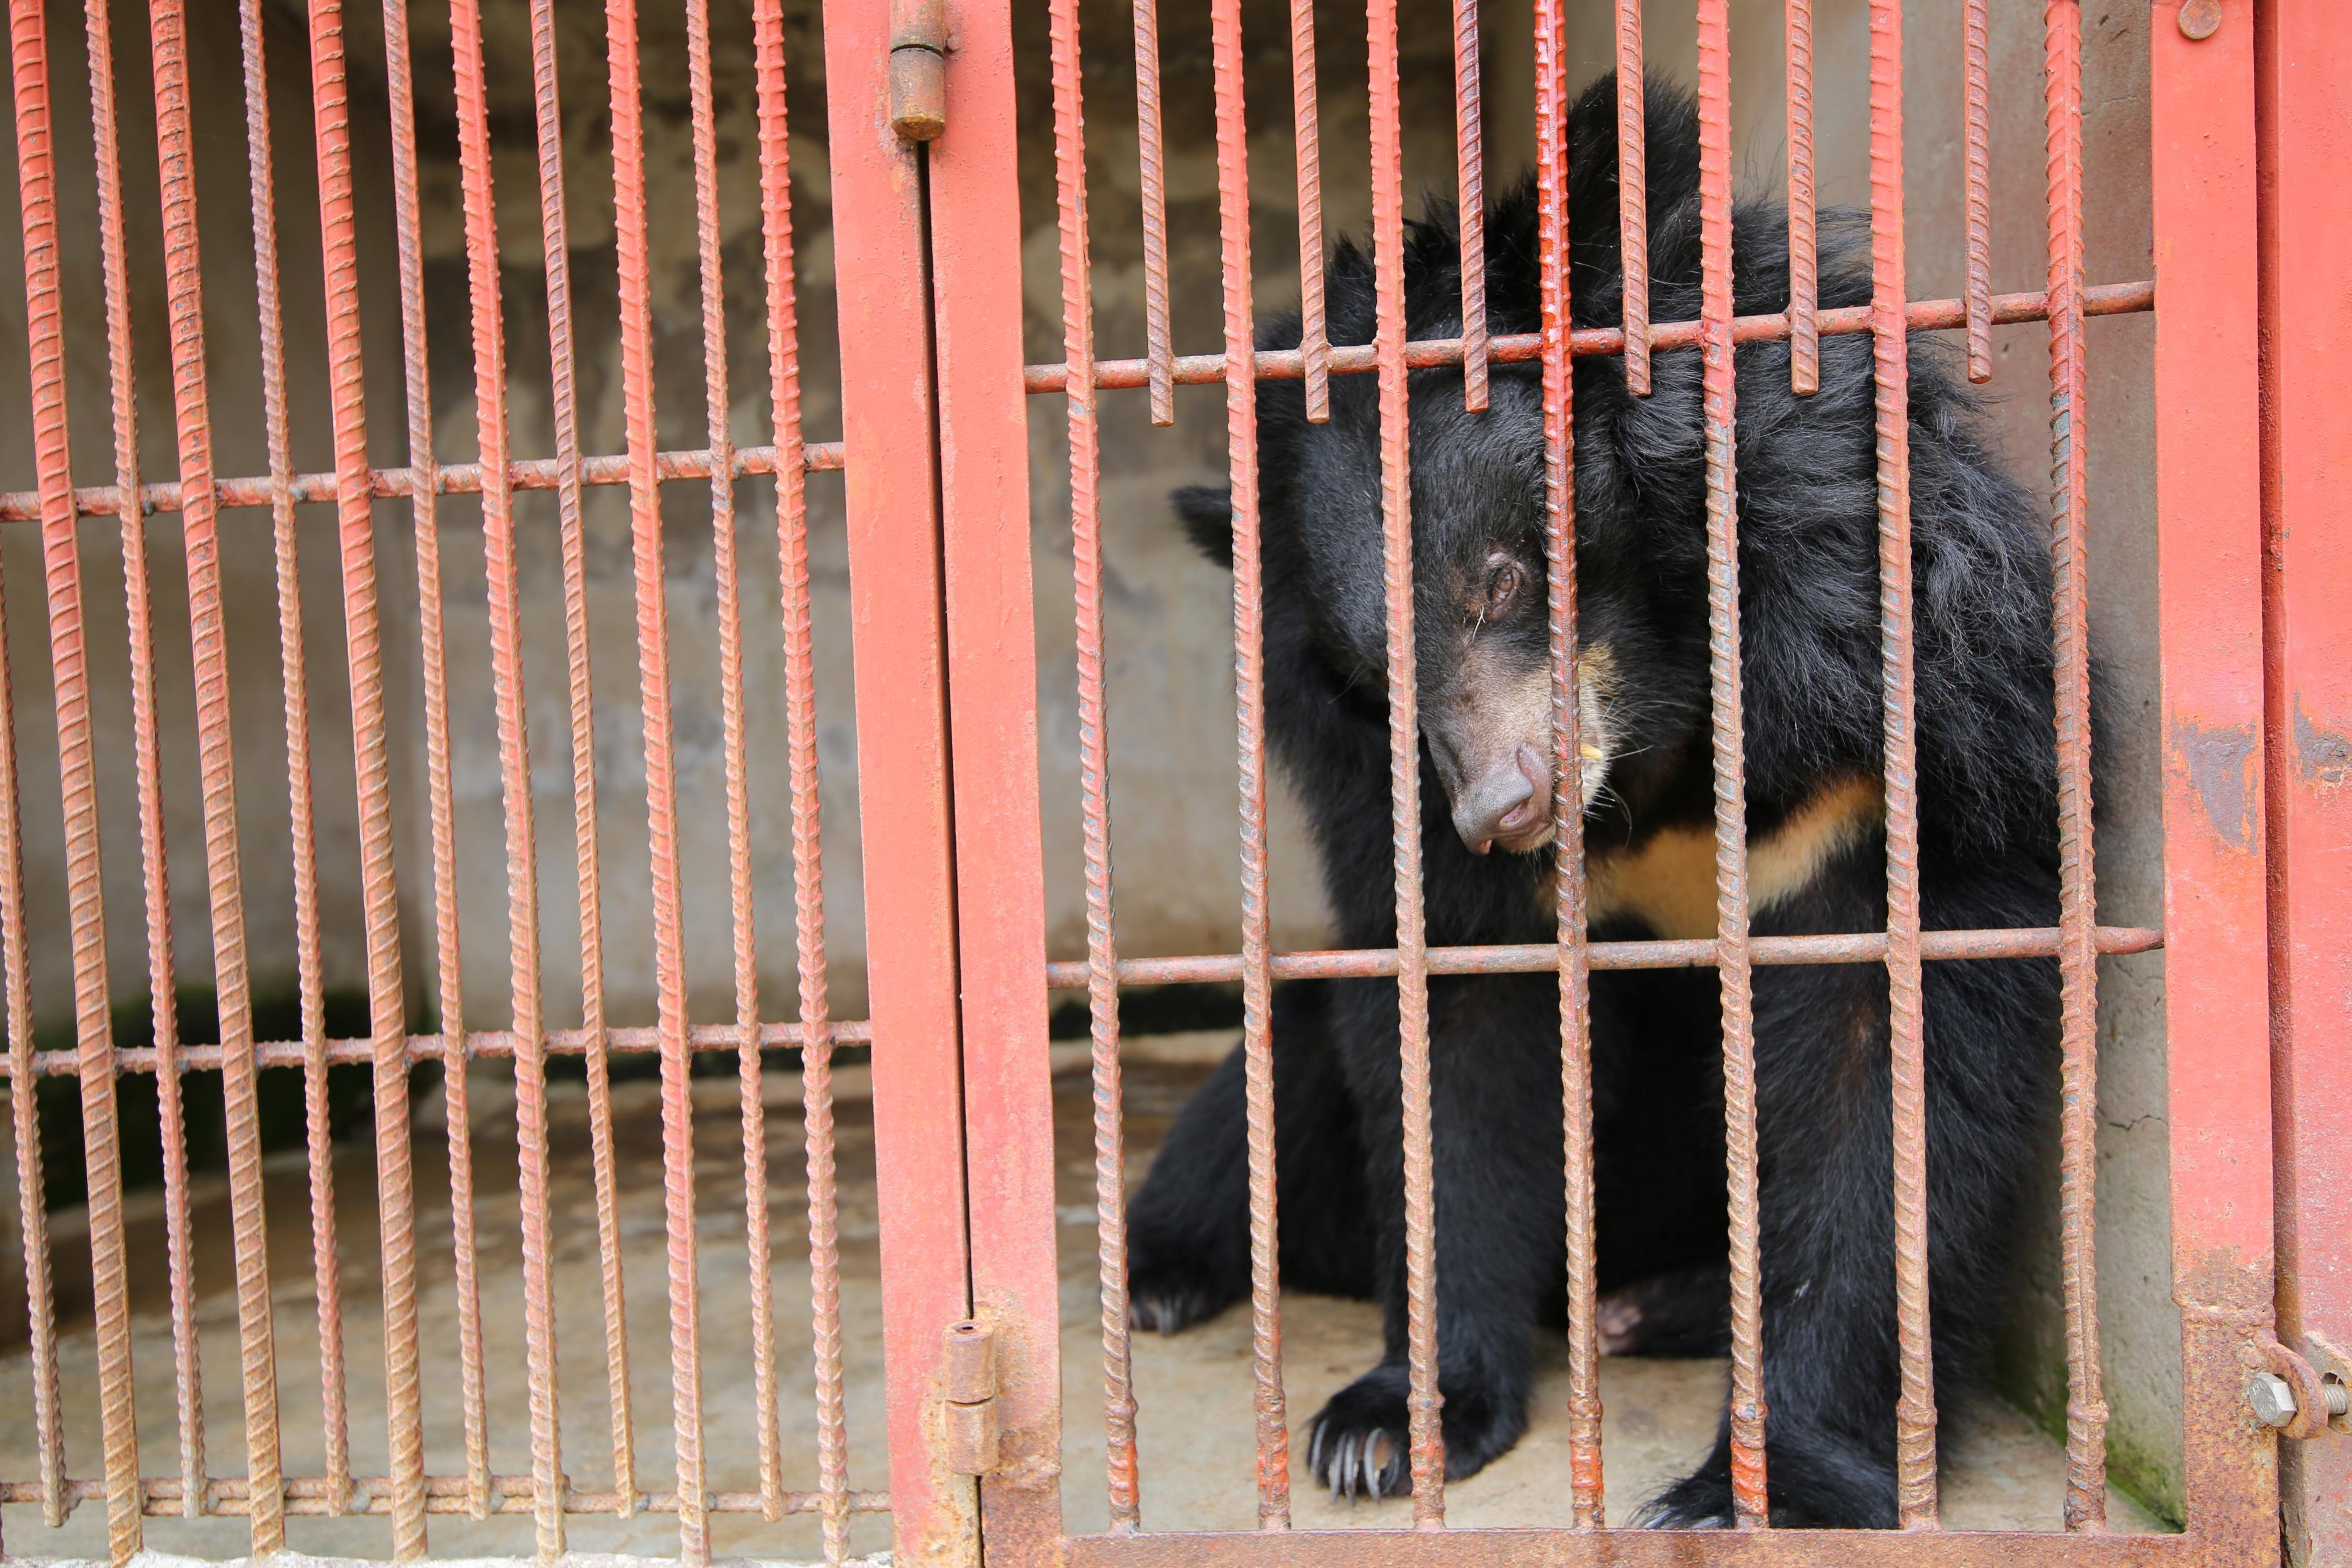 The suffering of a bile bears need to stop!